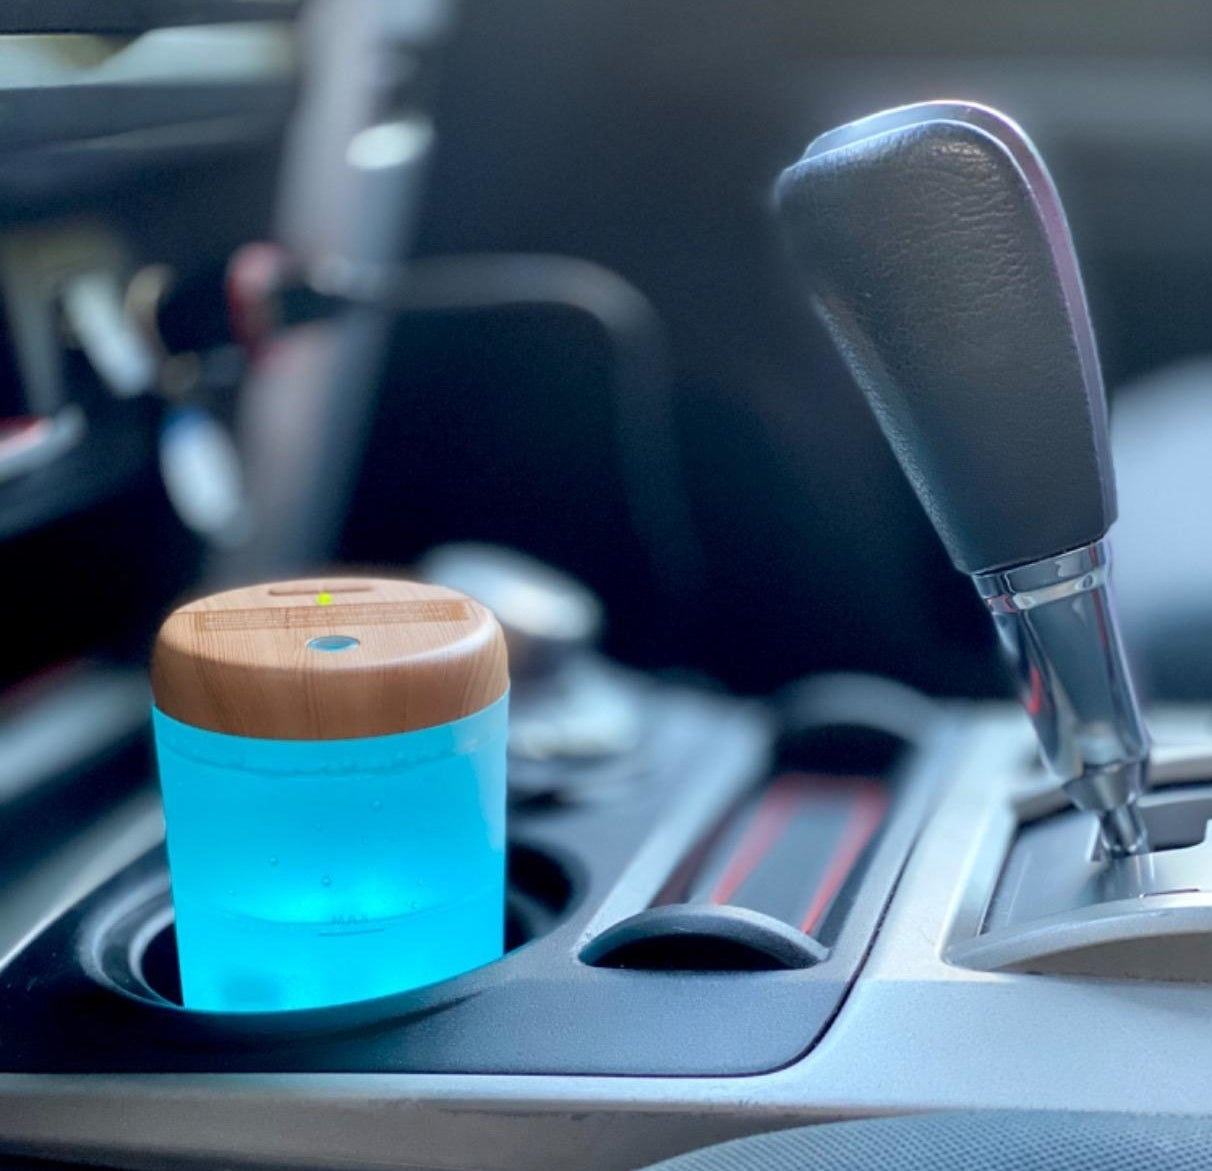 a small glowing blue diffuser in the cup holder of a reviewer's car